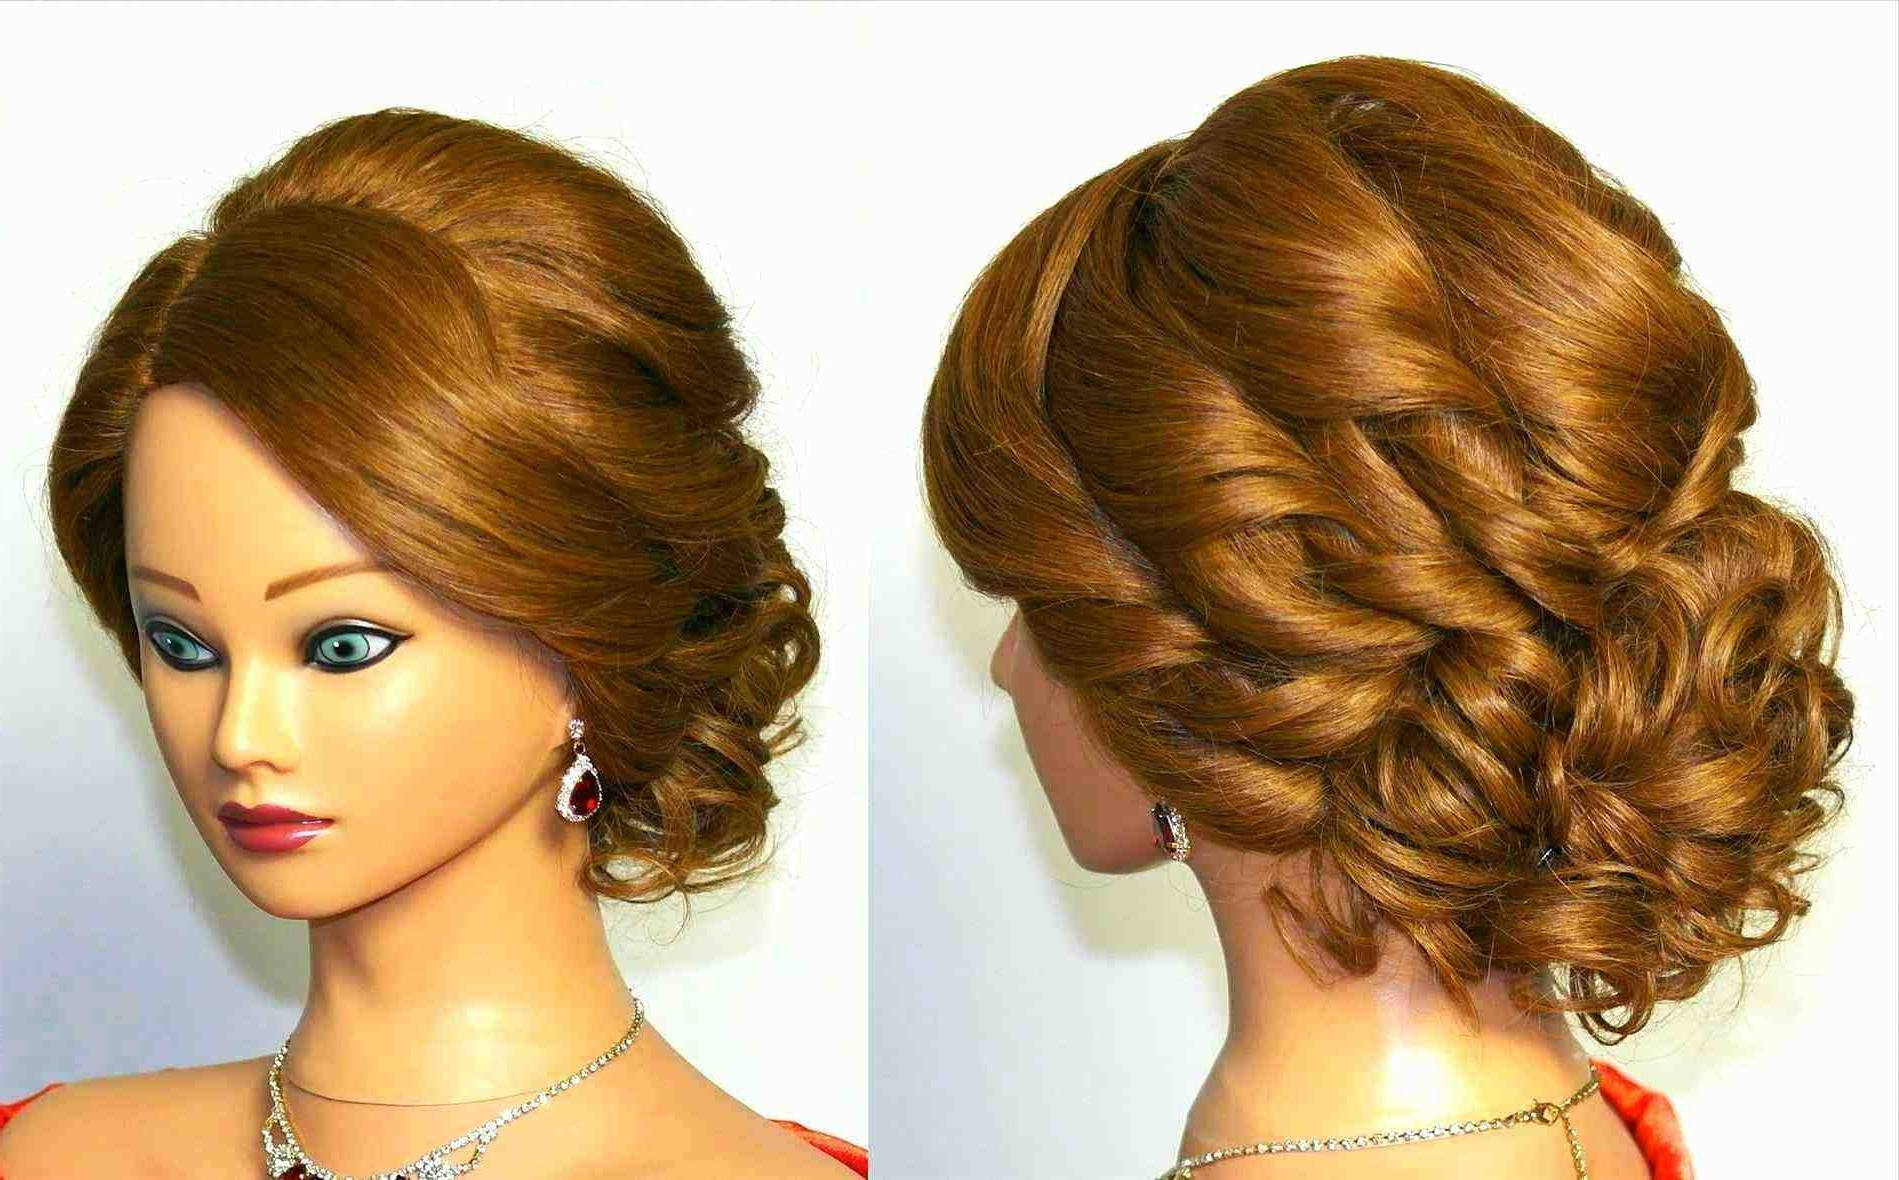 Widely Used Wedding Hairstyles For Short To Mid Length Hair Throughout Bridal Hairstyles For Short Hair Unique Up Medium Length Thin Hair U (View 15 of 15)